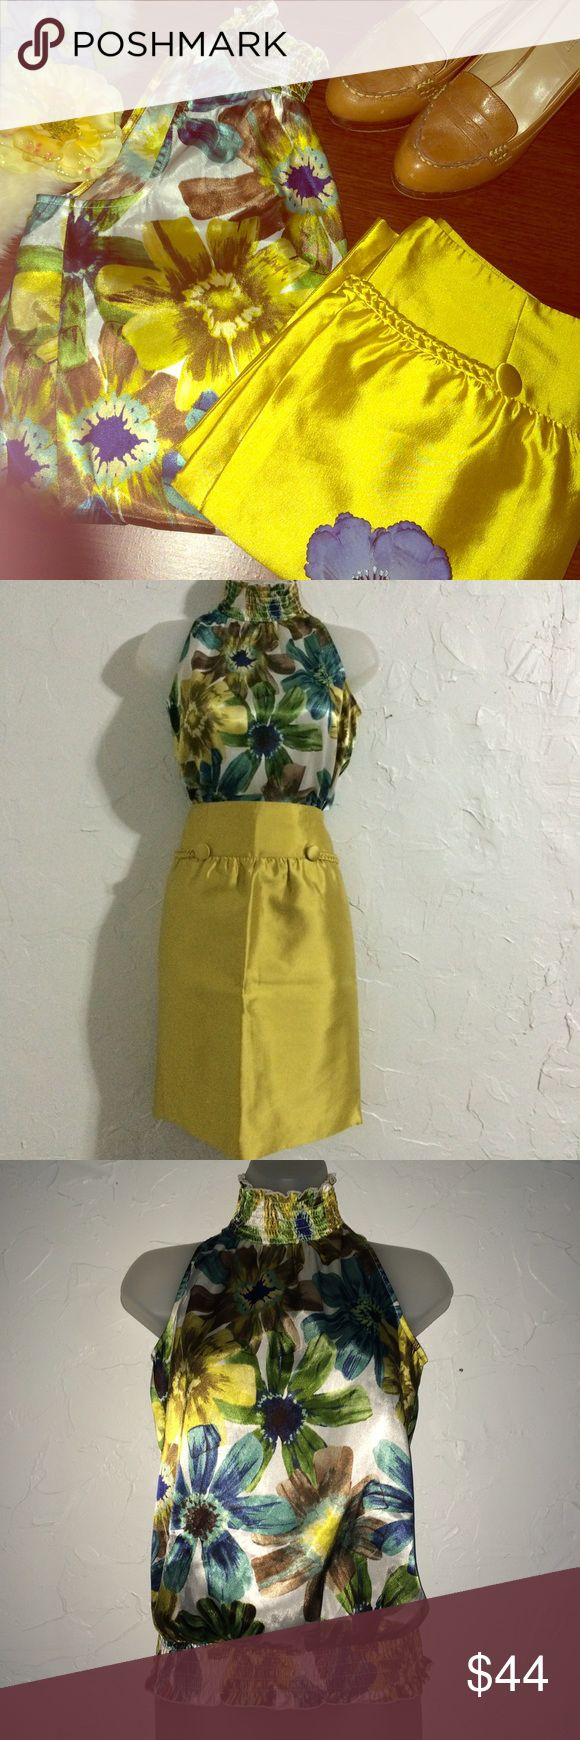 Outfit bundle Reiss Skirt size 4 and I Z Byer shirt size small. This outfit is an absolute stunner! Stop the show in this metallic yellow pencil skirt and silky floral print top! Pair with a blue cardigan and a belt for fall to make the perfect fall time look. 🚫 No trades 🚫 No 🅿️ay🅿️al 🚫 No Ⓜ️ercari 💕ask me about bundles 💸 lowest prices up front 🎀 Reiss Skirts Pencil